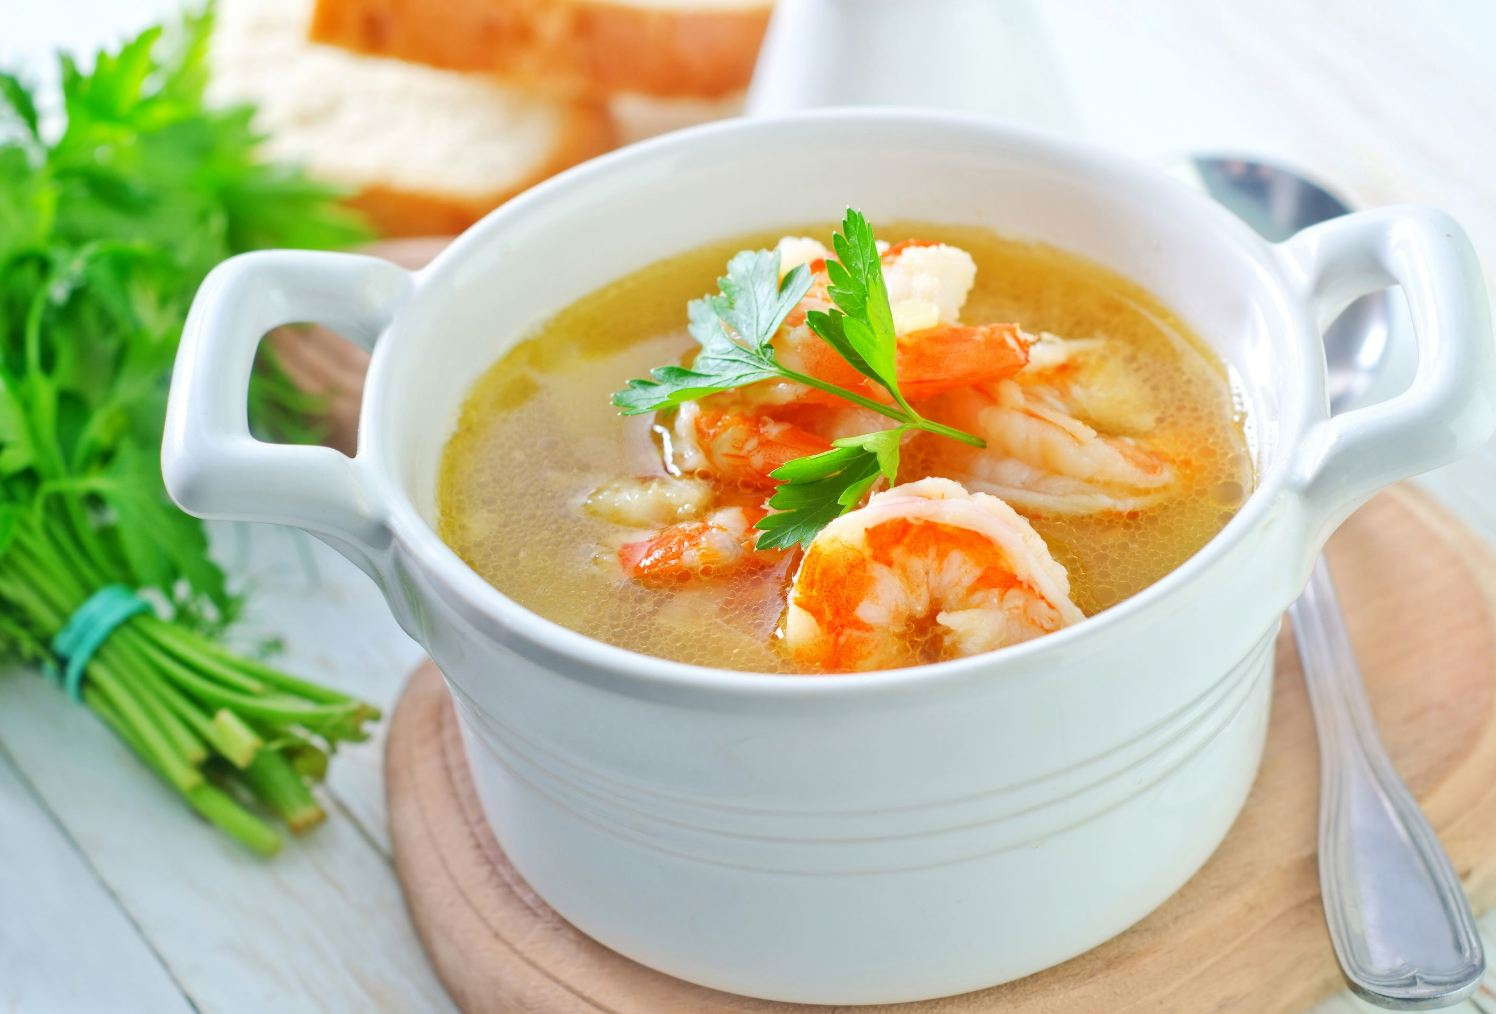 Tom Yum Goong (Thai hot and sour prawn soup) | Safer Eating